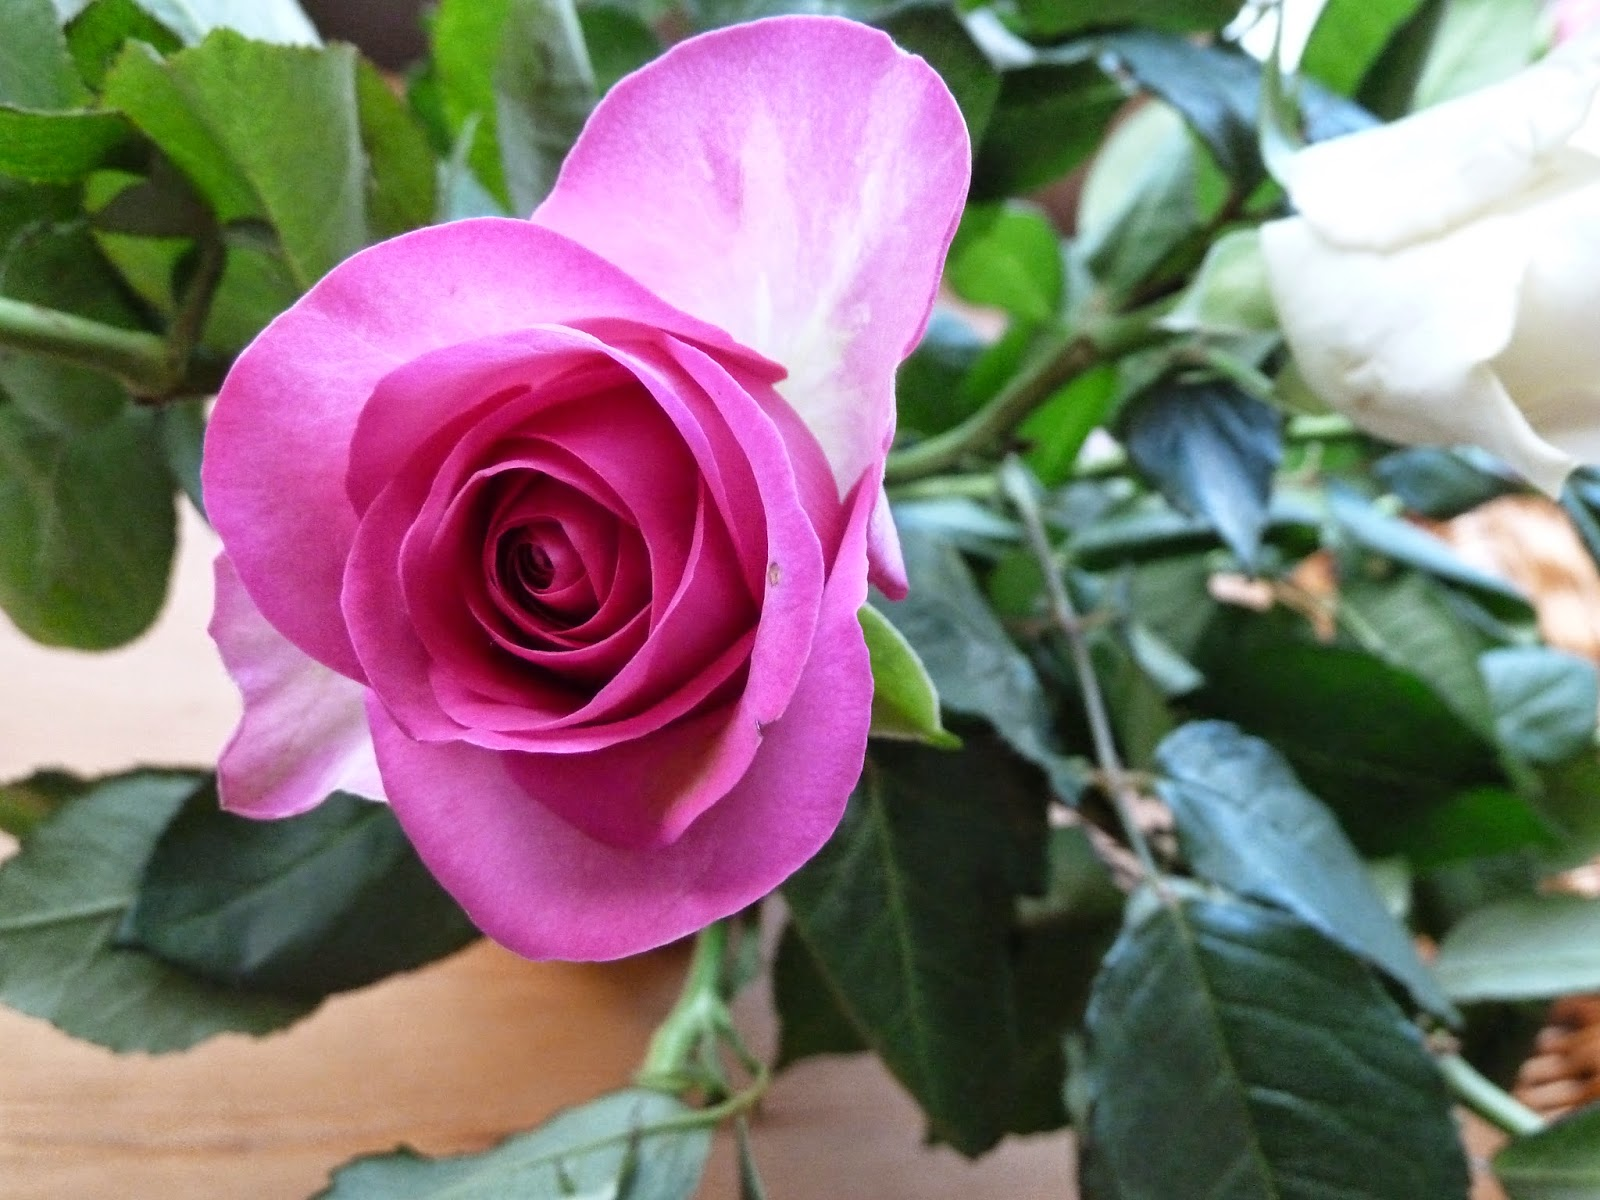 Pink rose with open outer petals